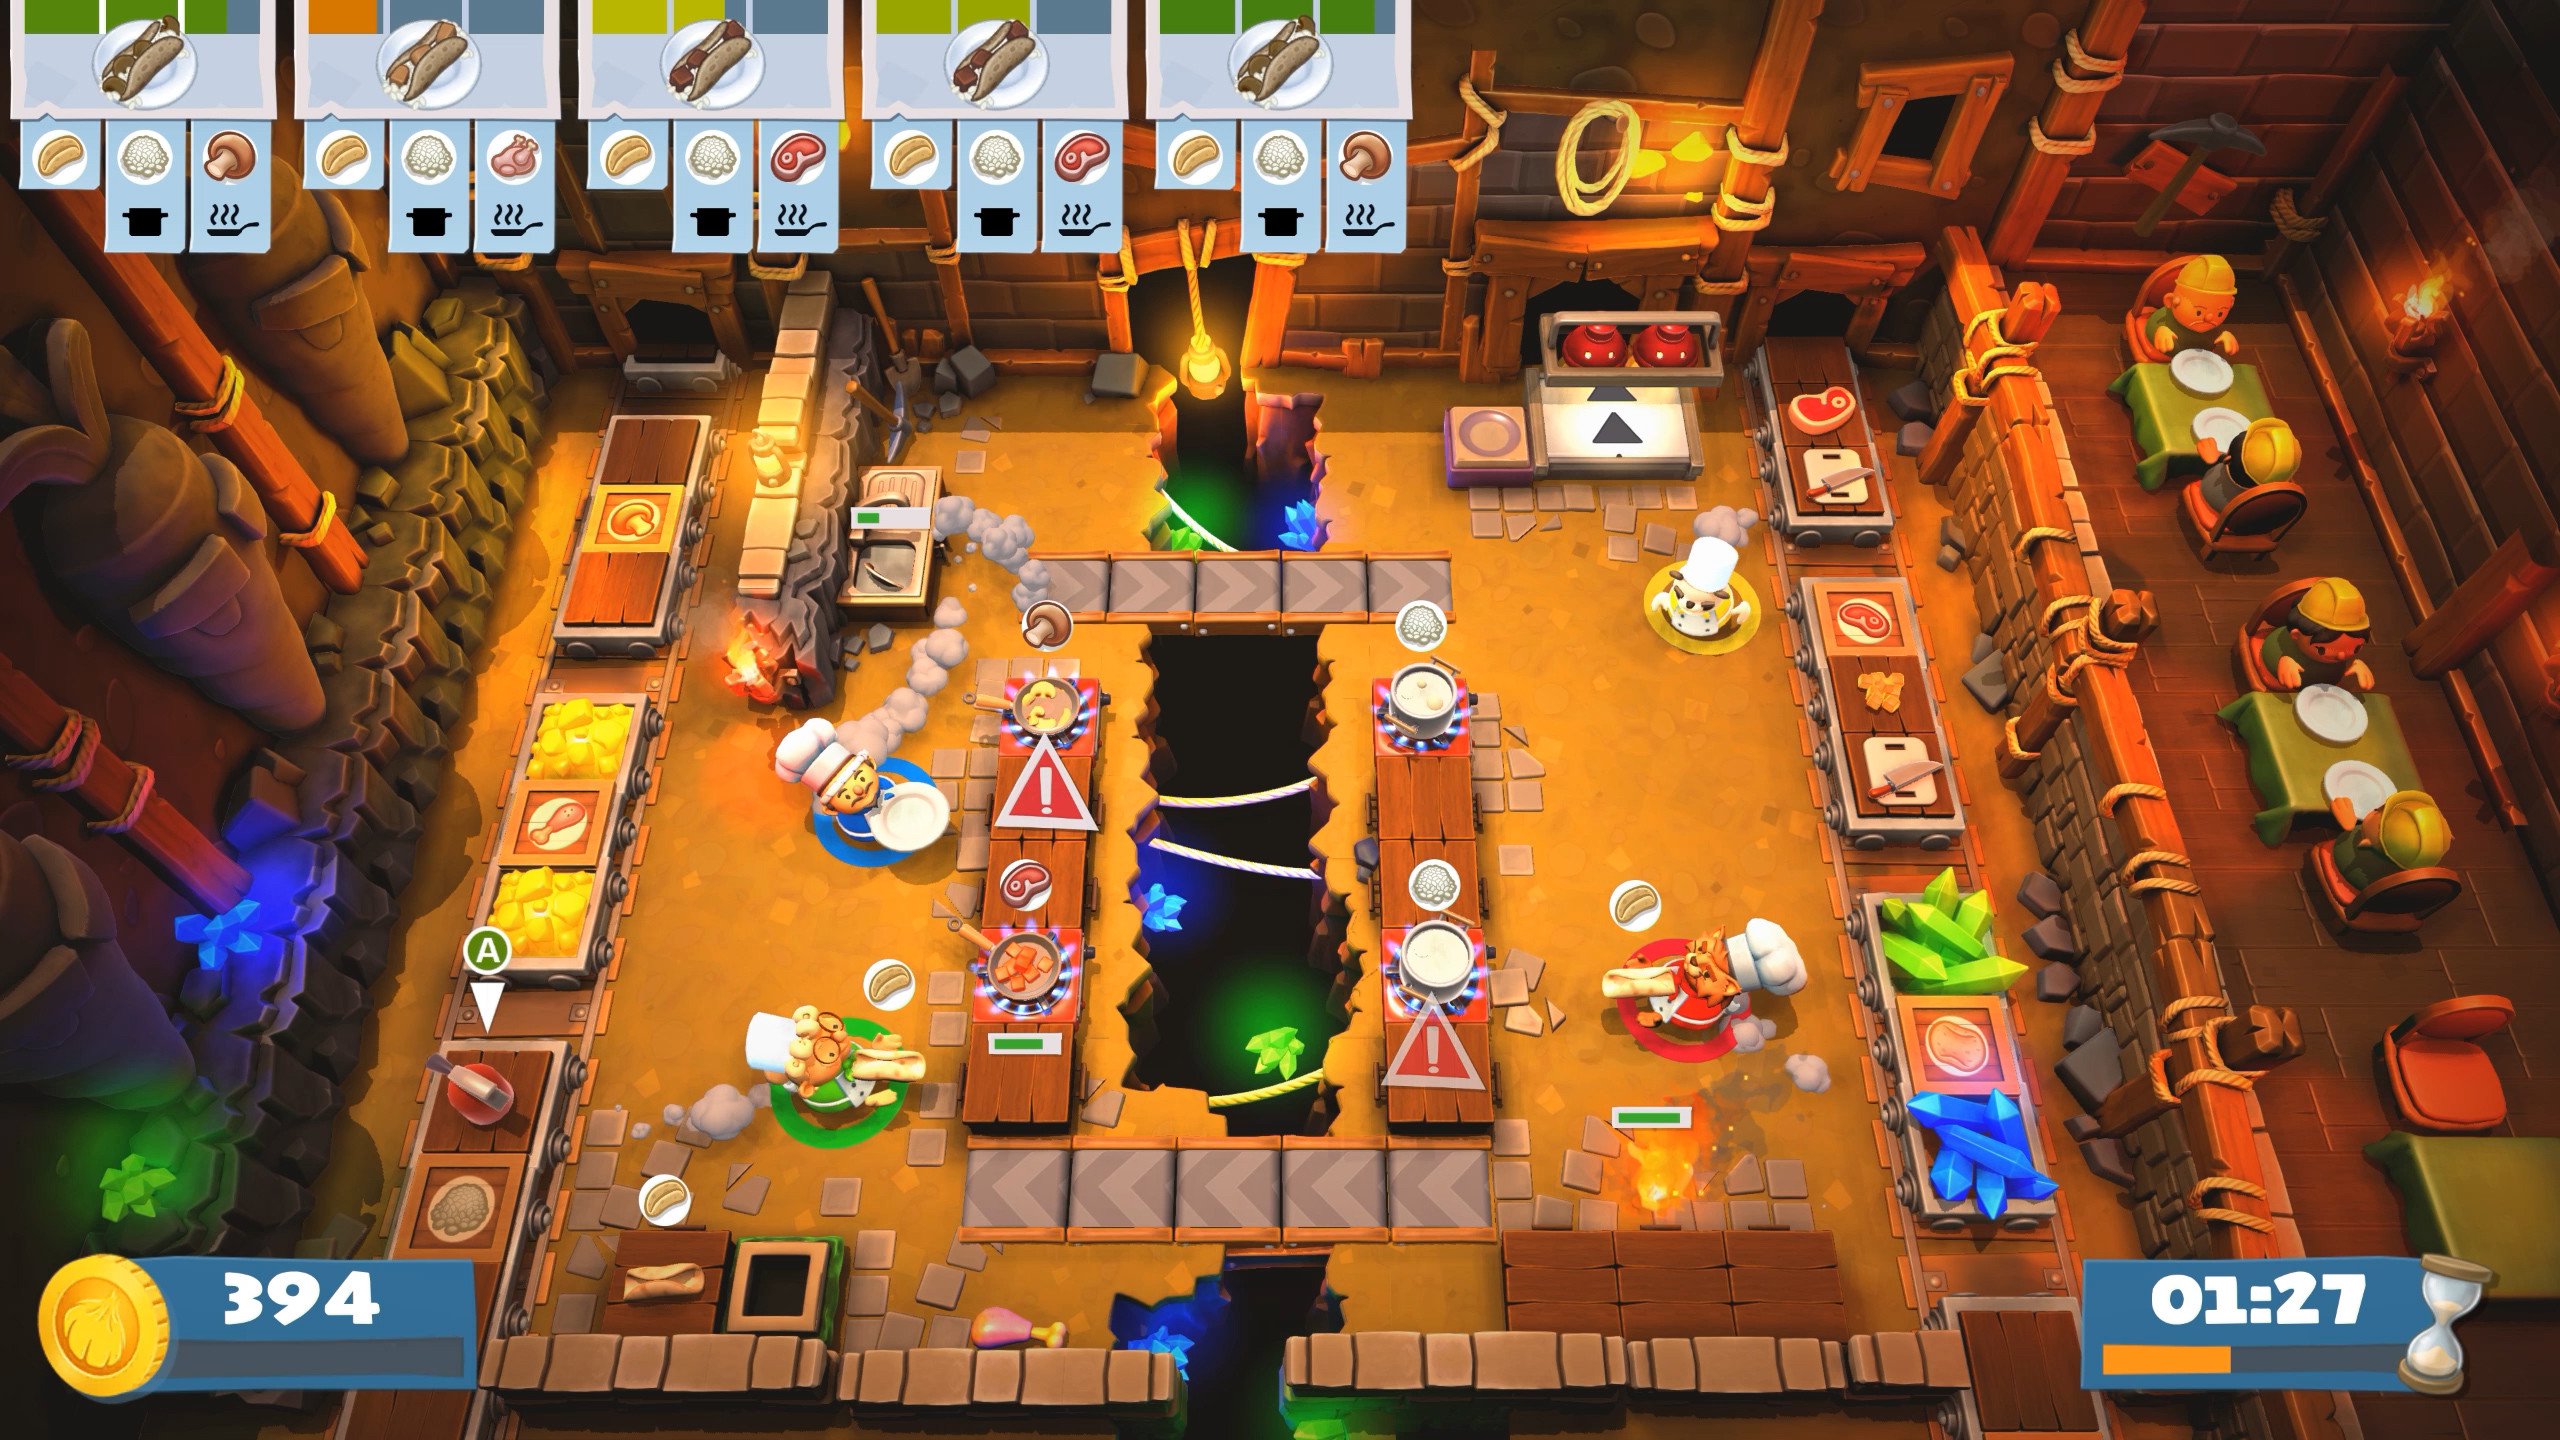 Overcooked 2 is an incredibly popular co-op kitchen experience.